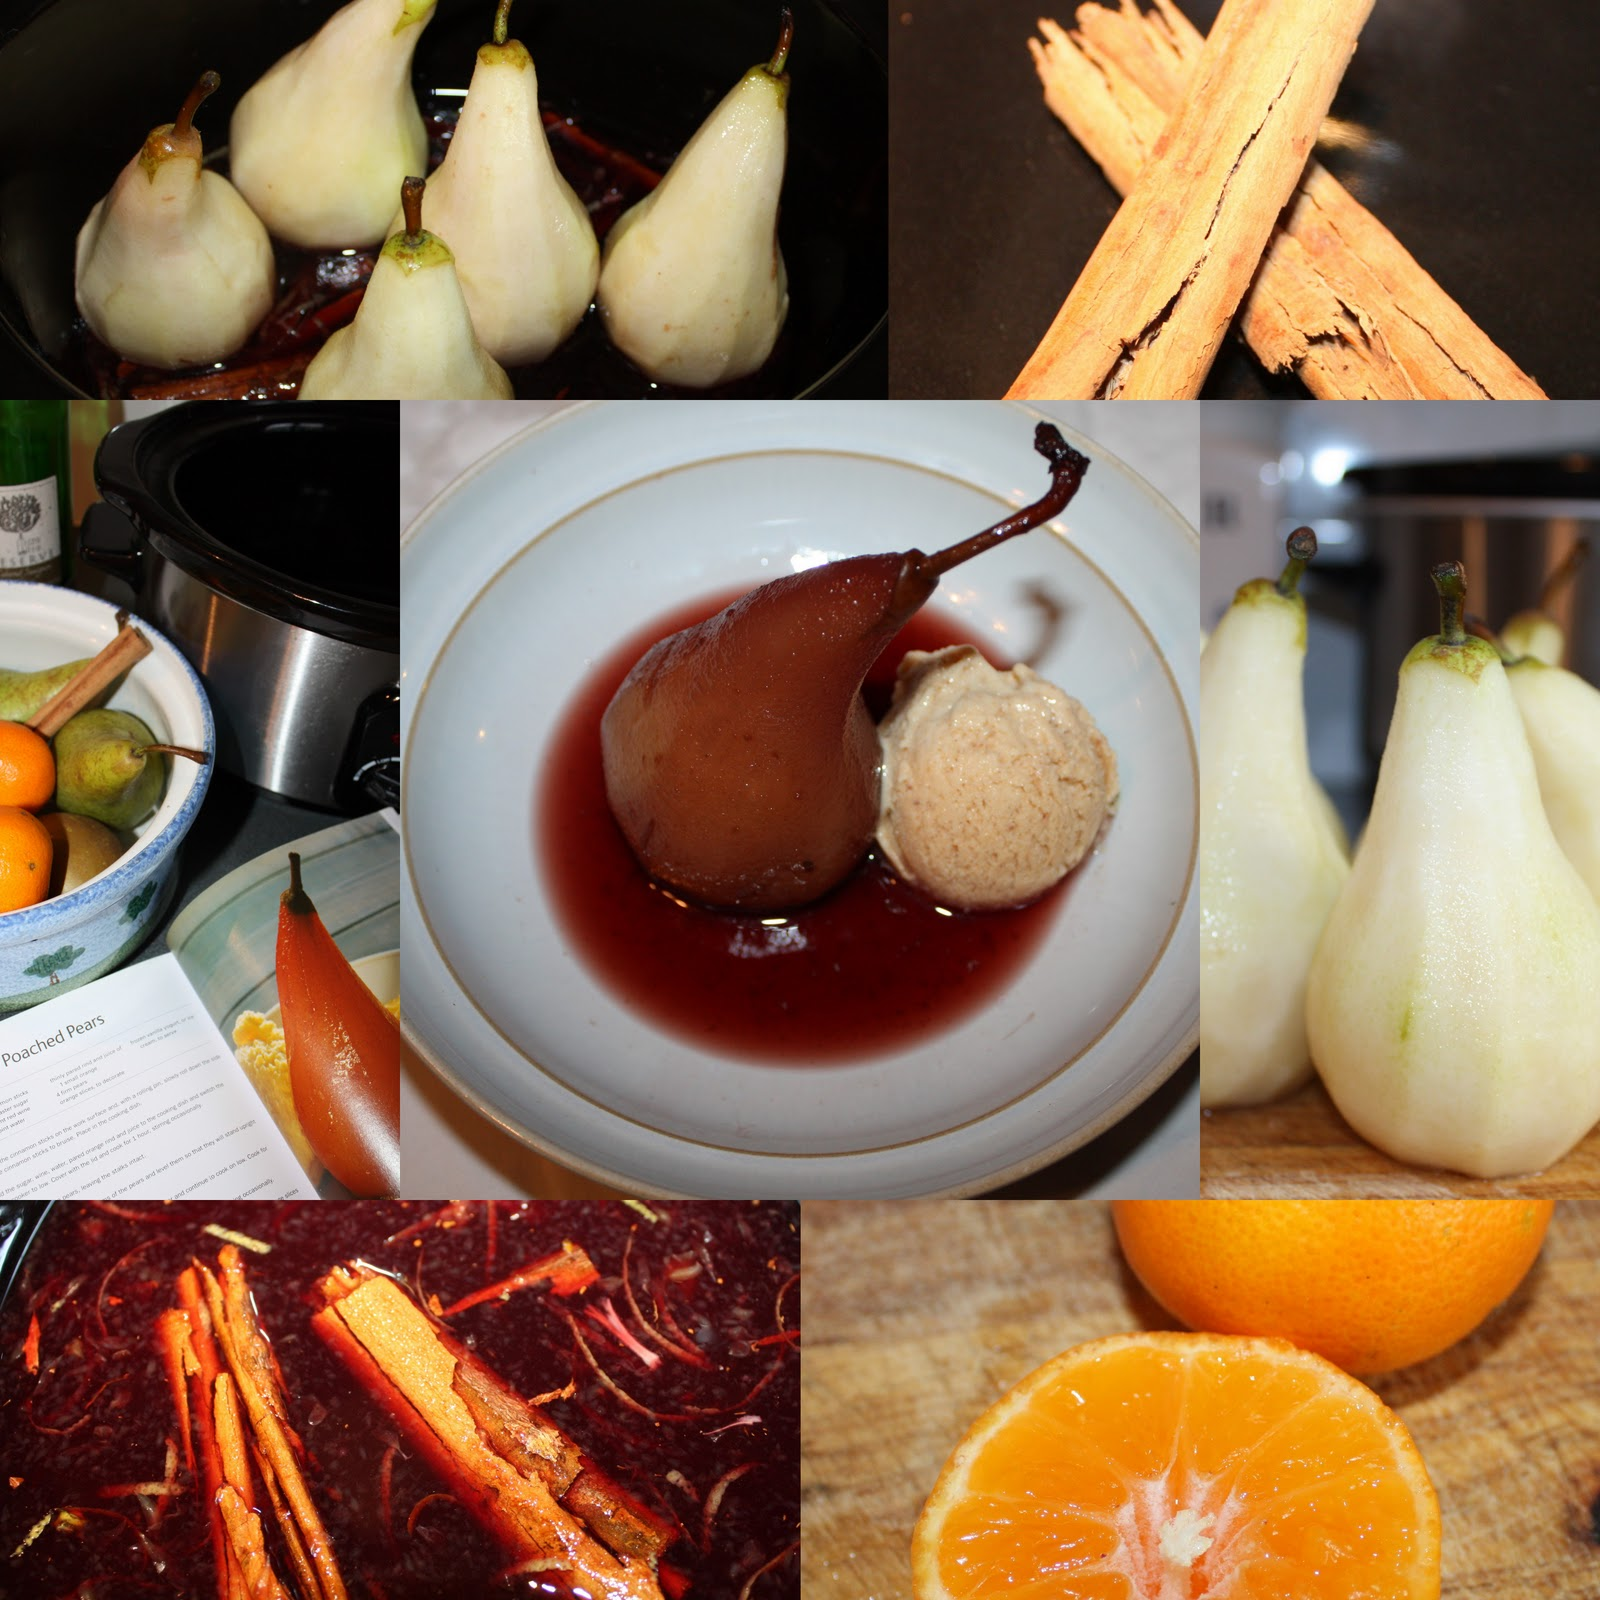 poached pears smell so wonderful and festive while they are cooking ...